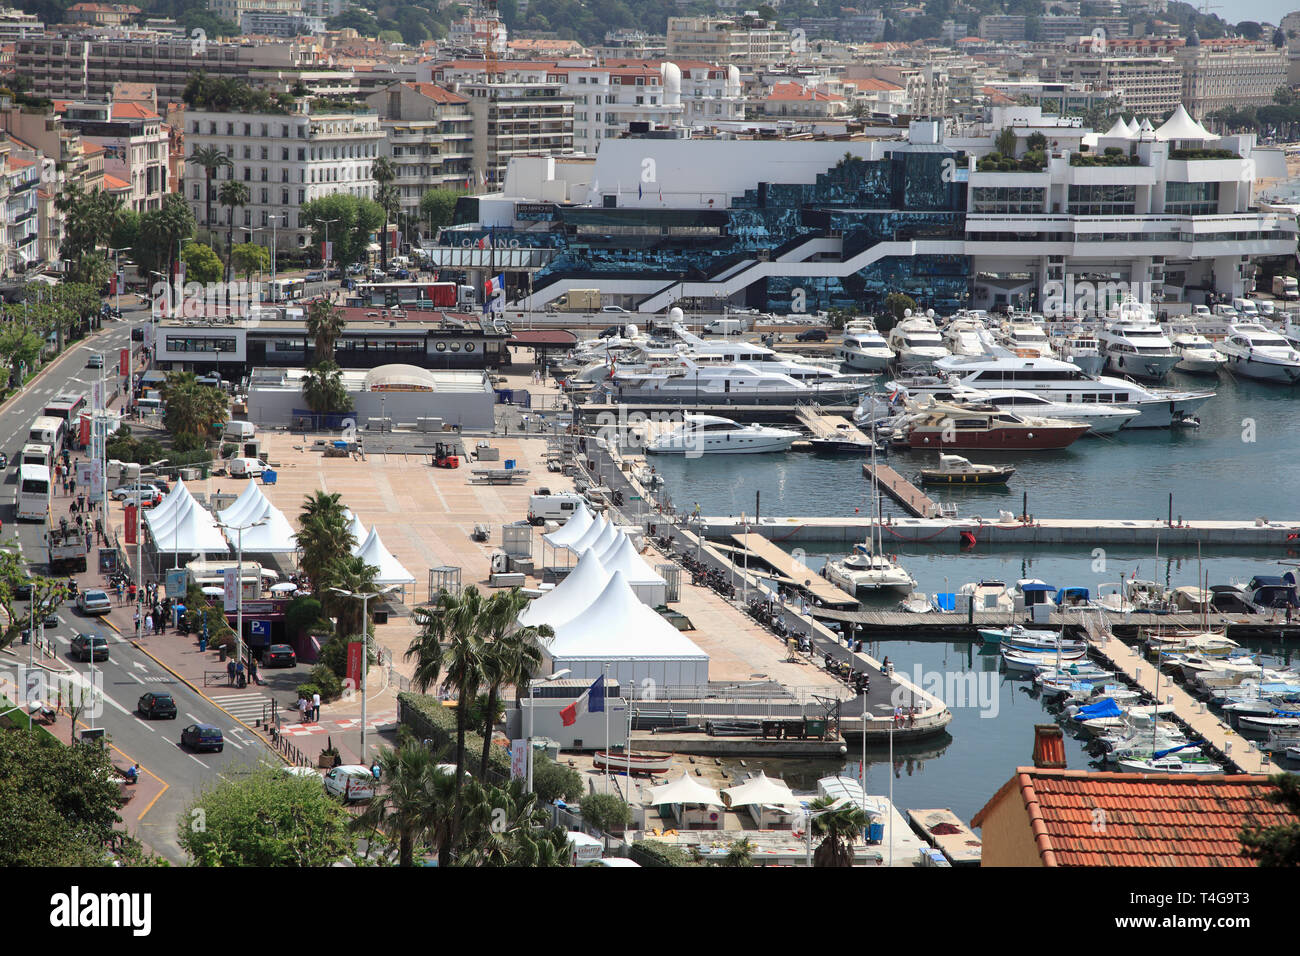 Harbor, Port, Cannes, Cote d Azur, Alpes Maritimes, Provence, French Riviera, France, Europe - Stock Image